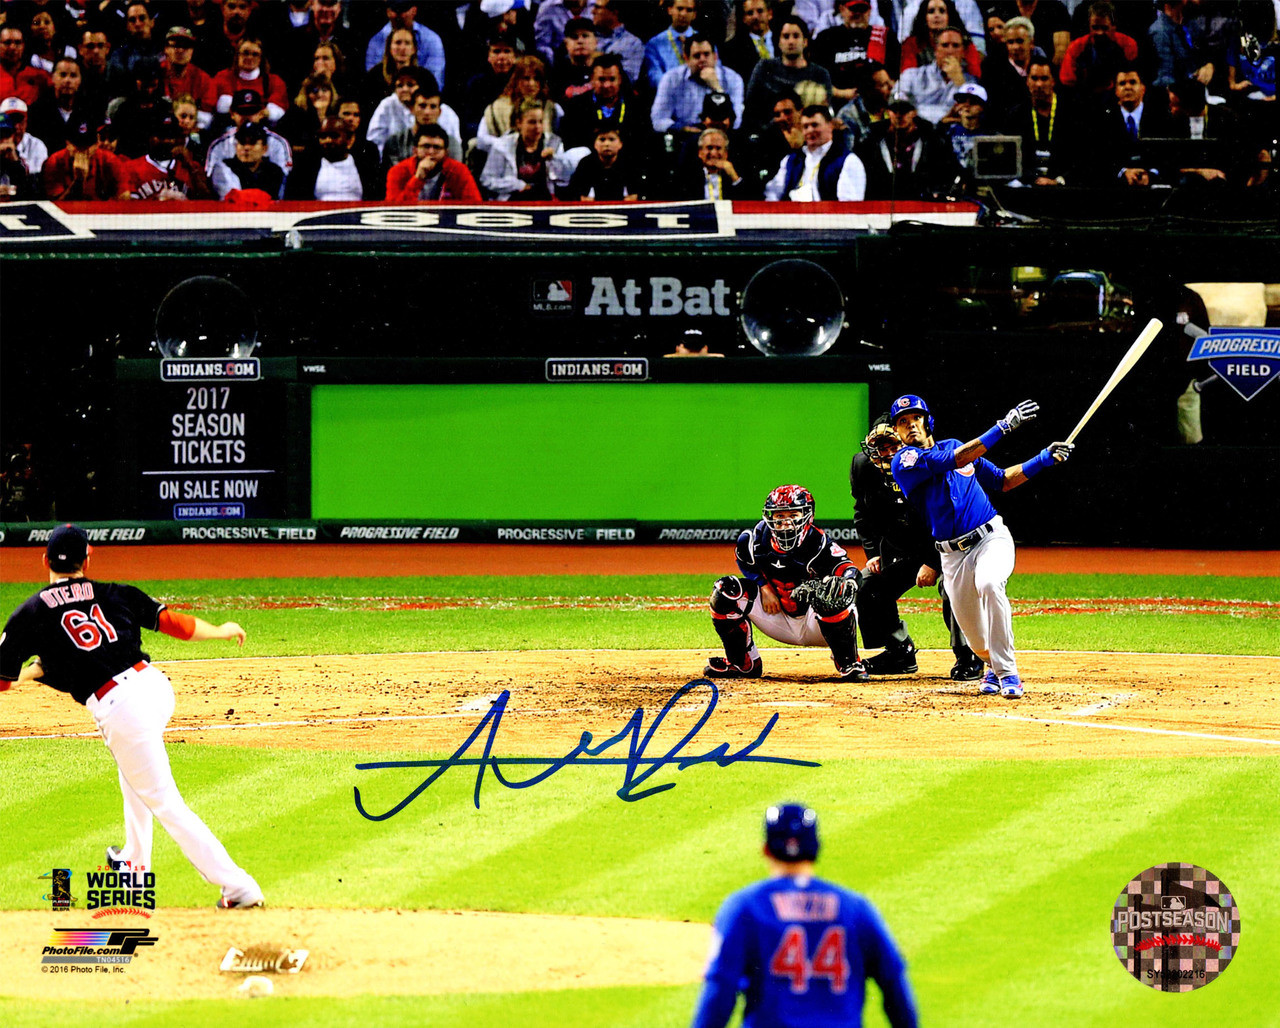 Addison Russell Signed Chicago Cubs 2016 World Series Game 6 Grand Slam 8x10 Photo